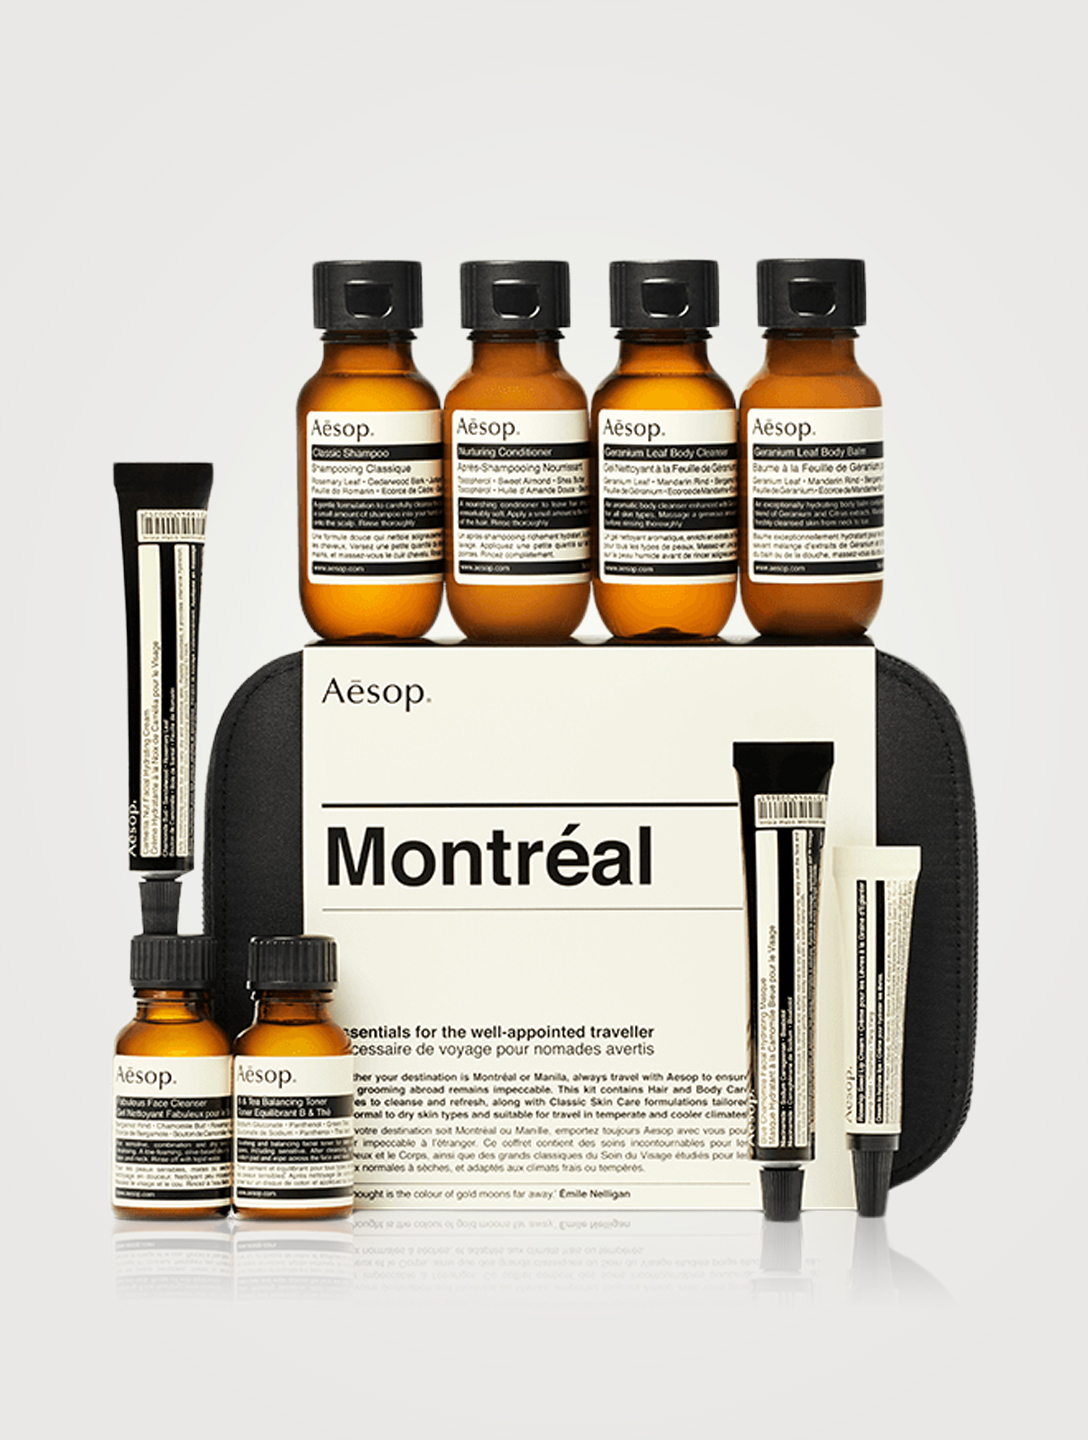 AESOP Montreal City Kit Beauty